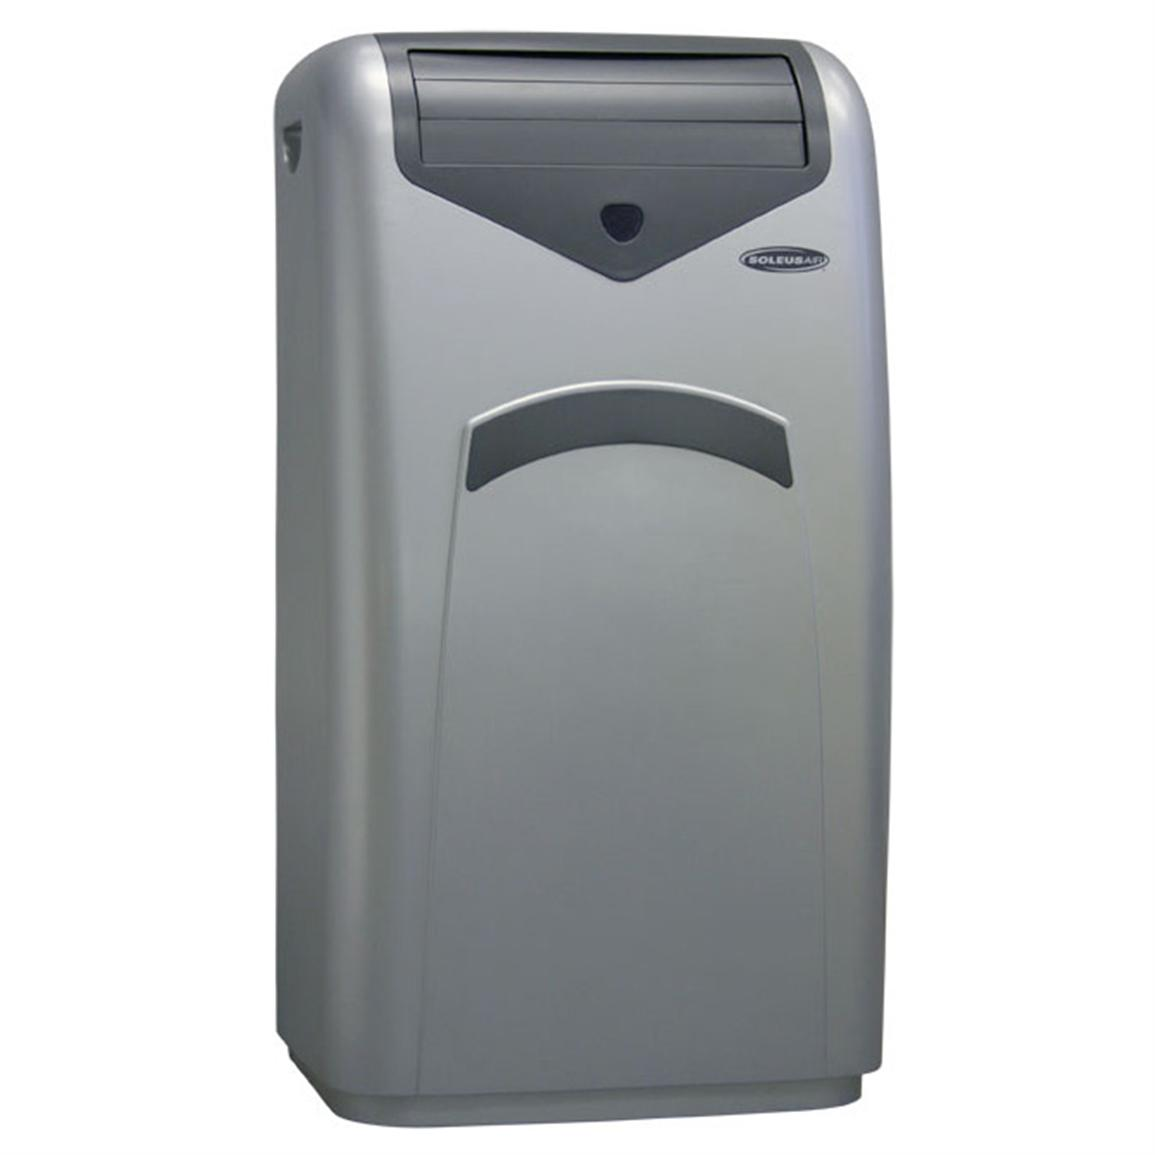 Evaporative Portable Air Conditioner : Soleus air btu portable evaporative